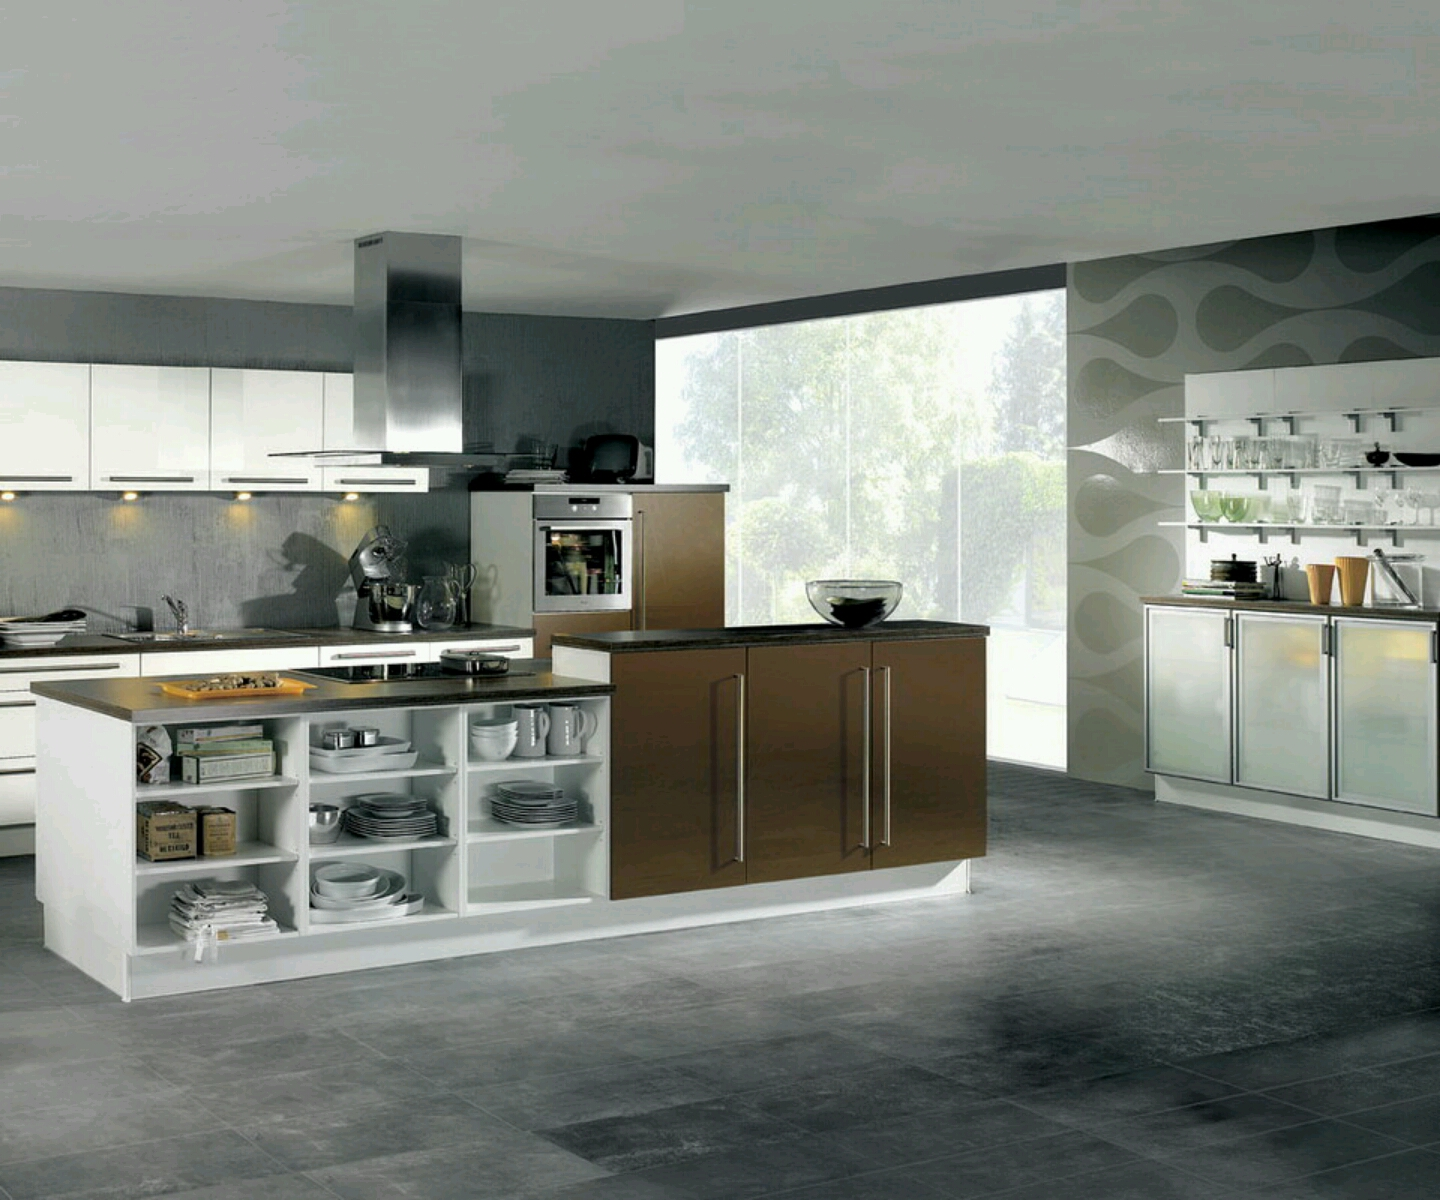 New home designs latest ultra modern kitchen designs ideas for Photos of new kitchen designs